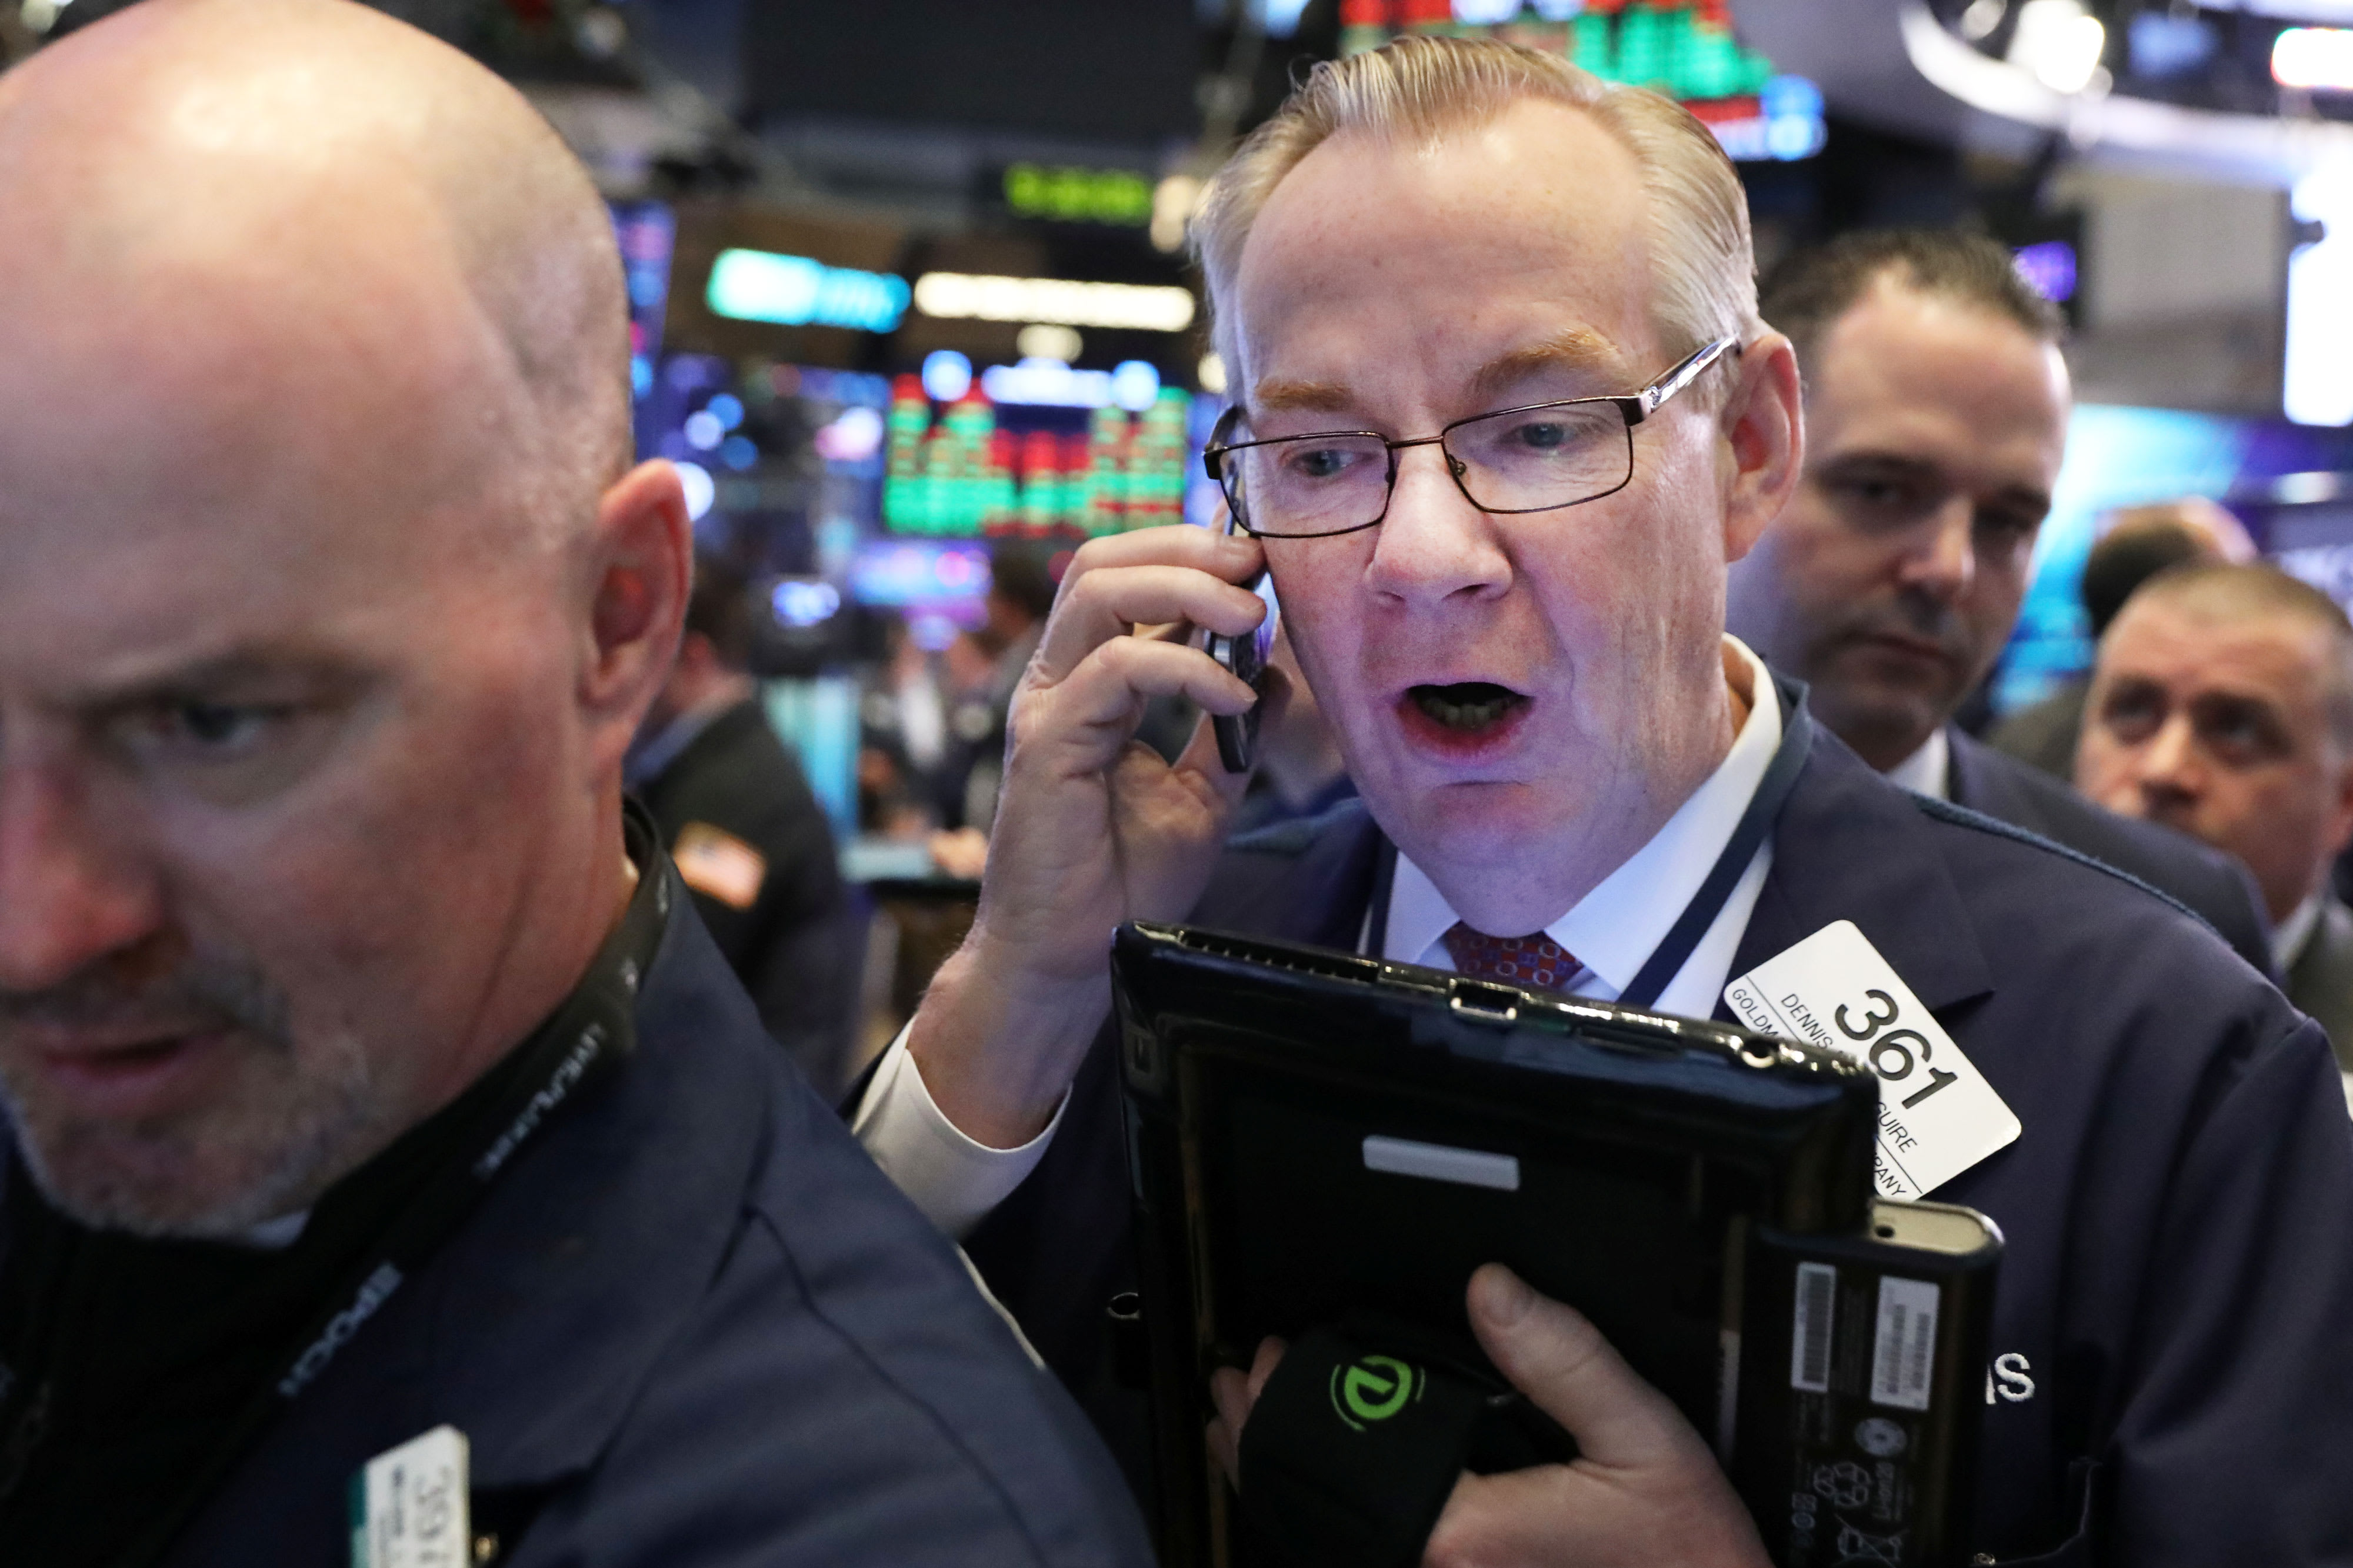 Stocks making the biggest moves midday: Lyft, Exxon Mobil, GM